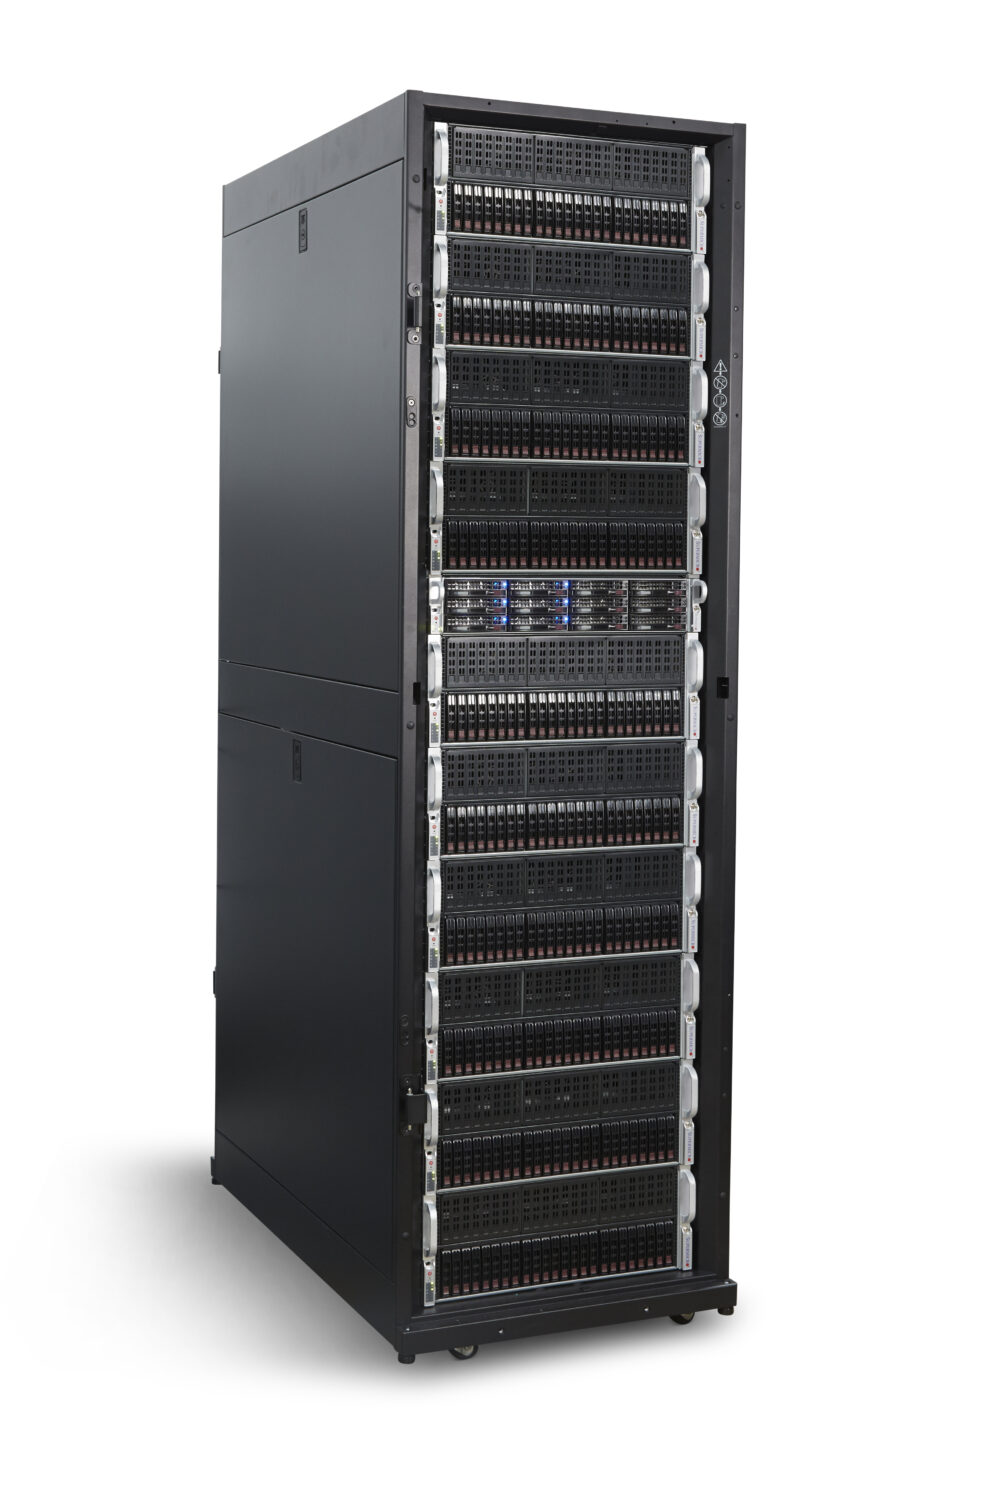 Ace server tower side